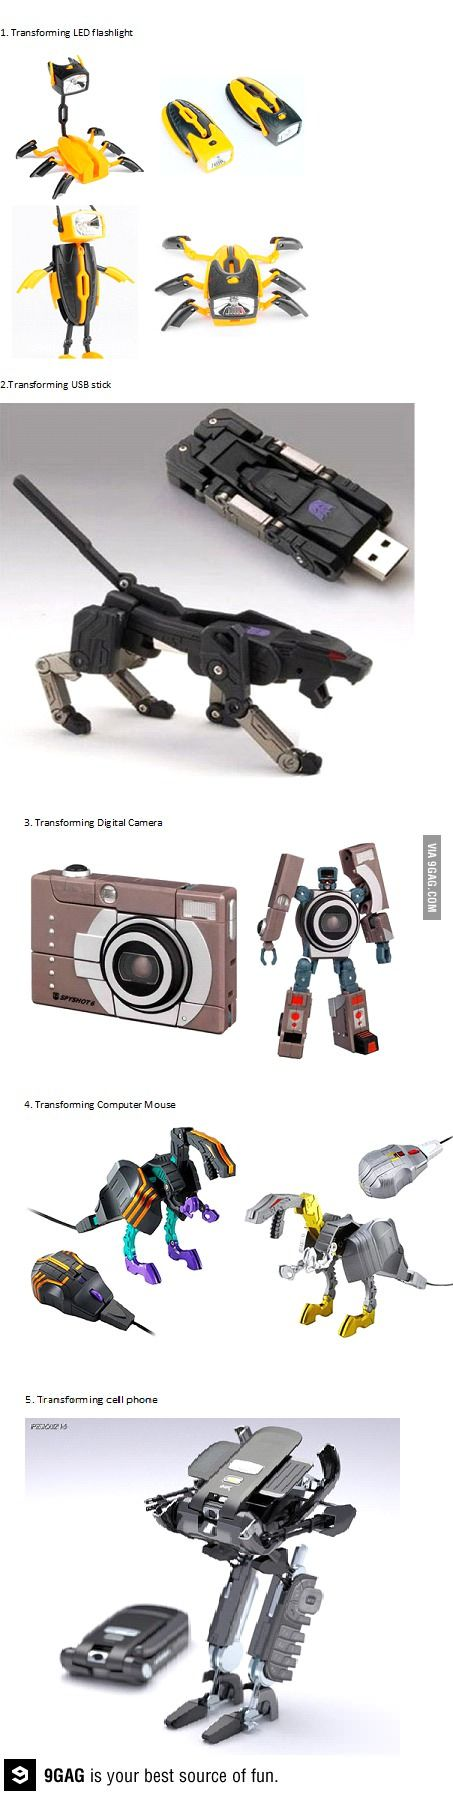 Some cool transforming gadgets                                                                                                                                                      More